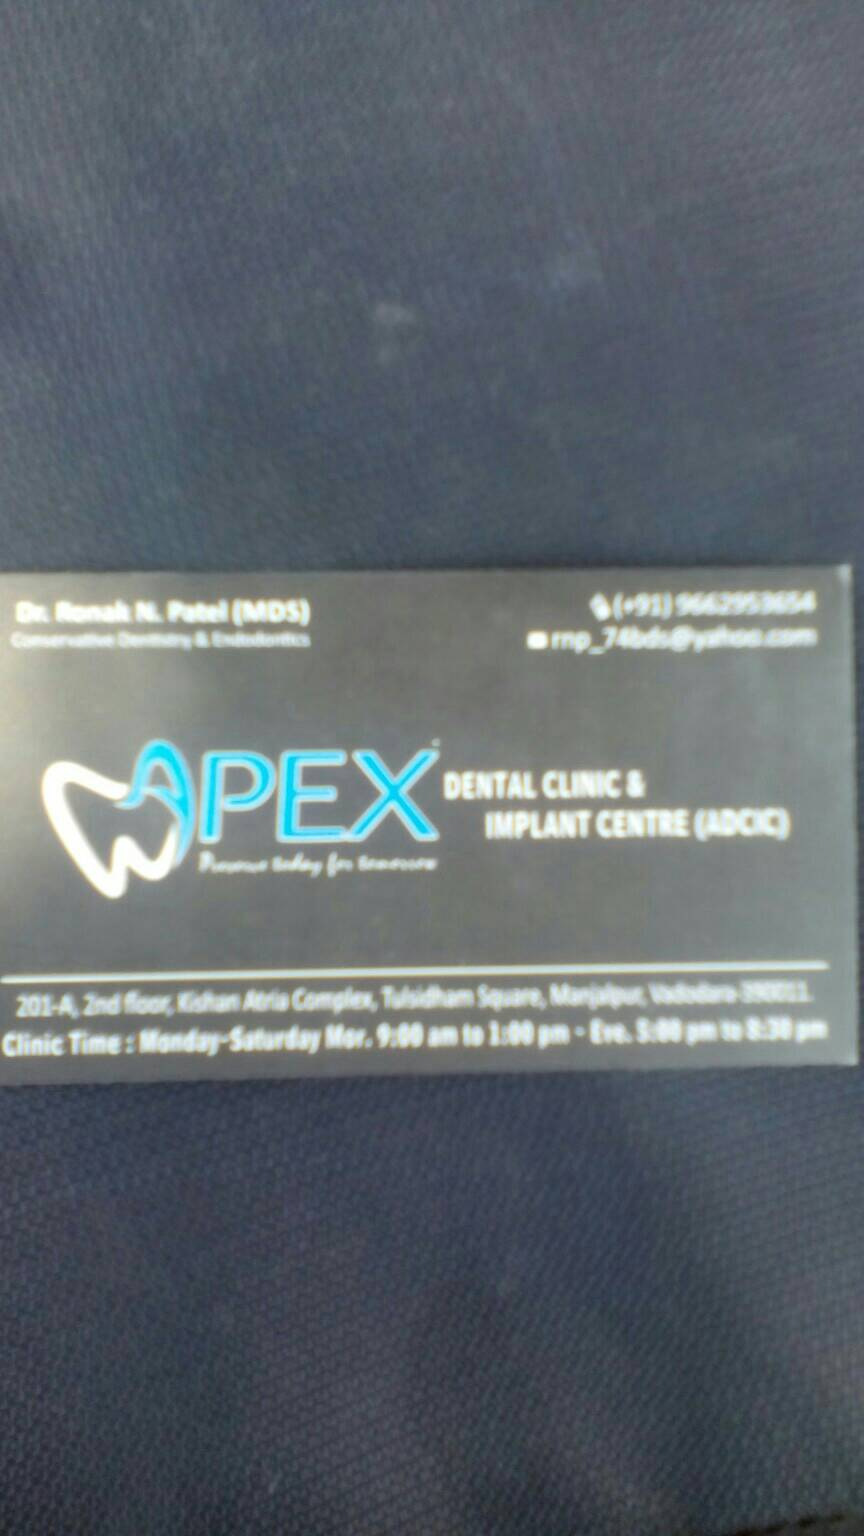 MPEX DENTAL CLINIC & IMPLEMENT CENTER